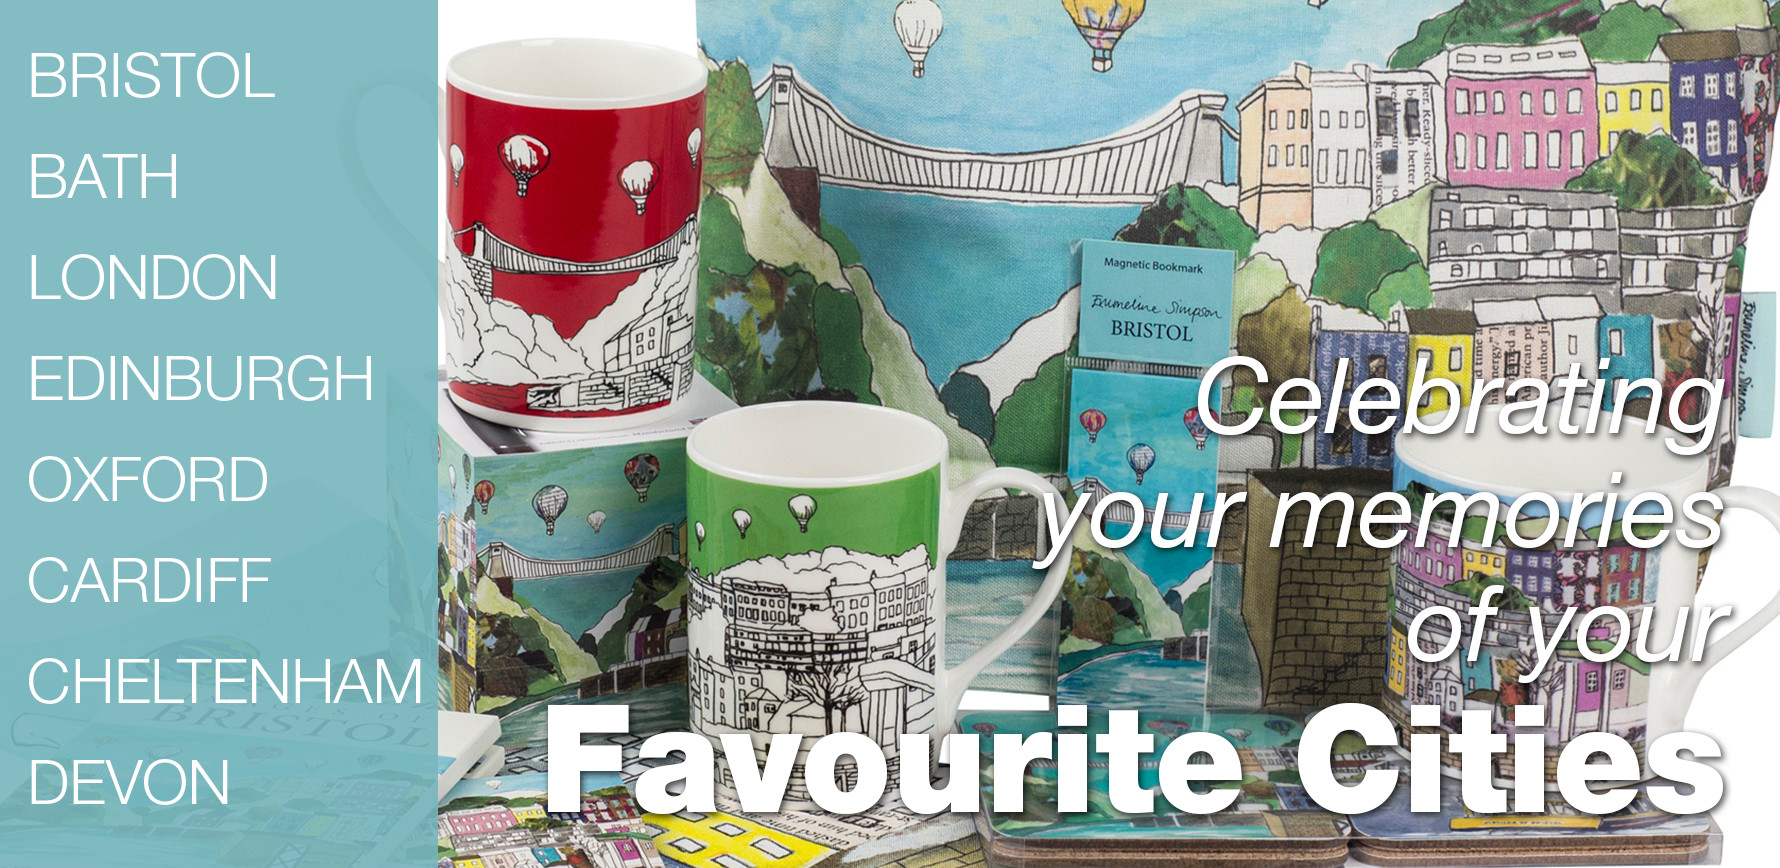 Celebrating your memories of your favourite cities